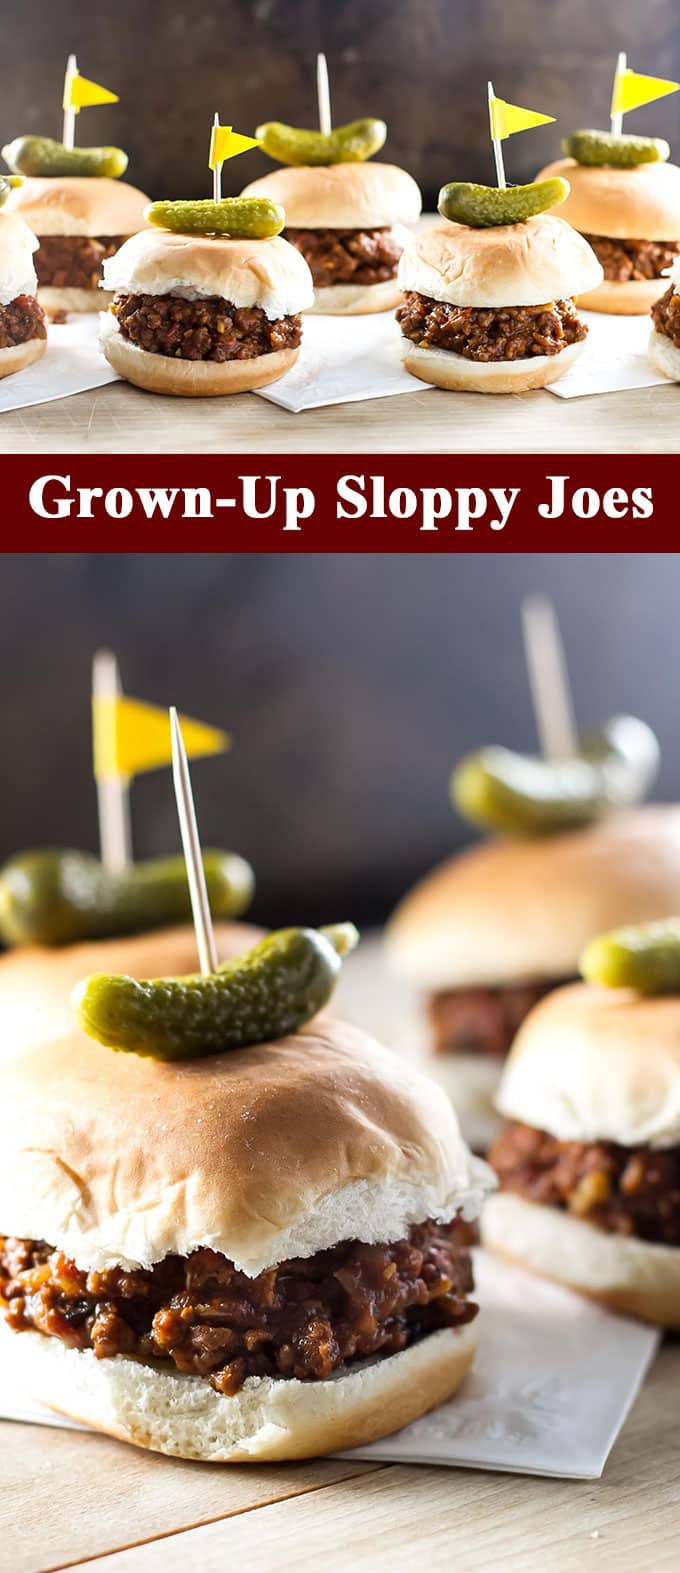 These are not your average sloppy joes! Try this grown-up version flavored with red wine and roasted vegetables | girlgonegourmet.com